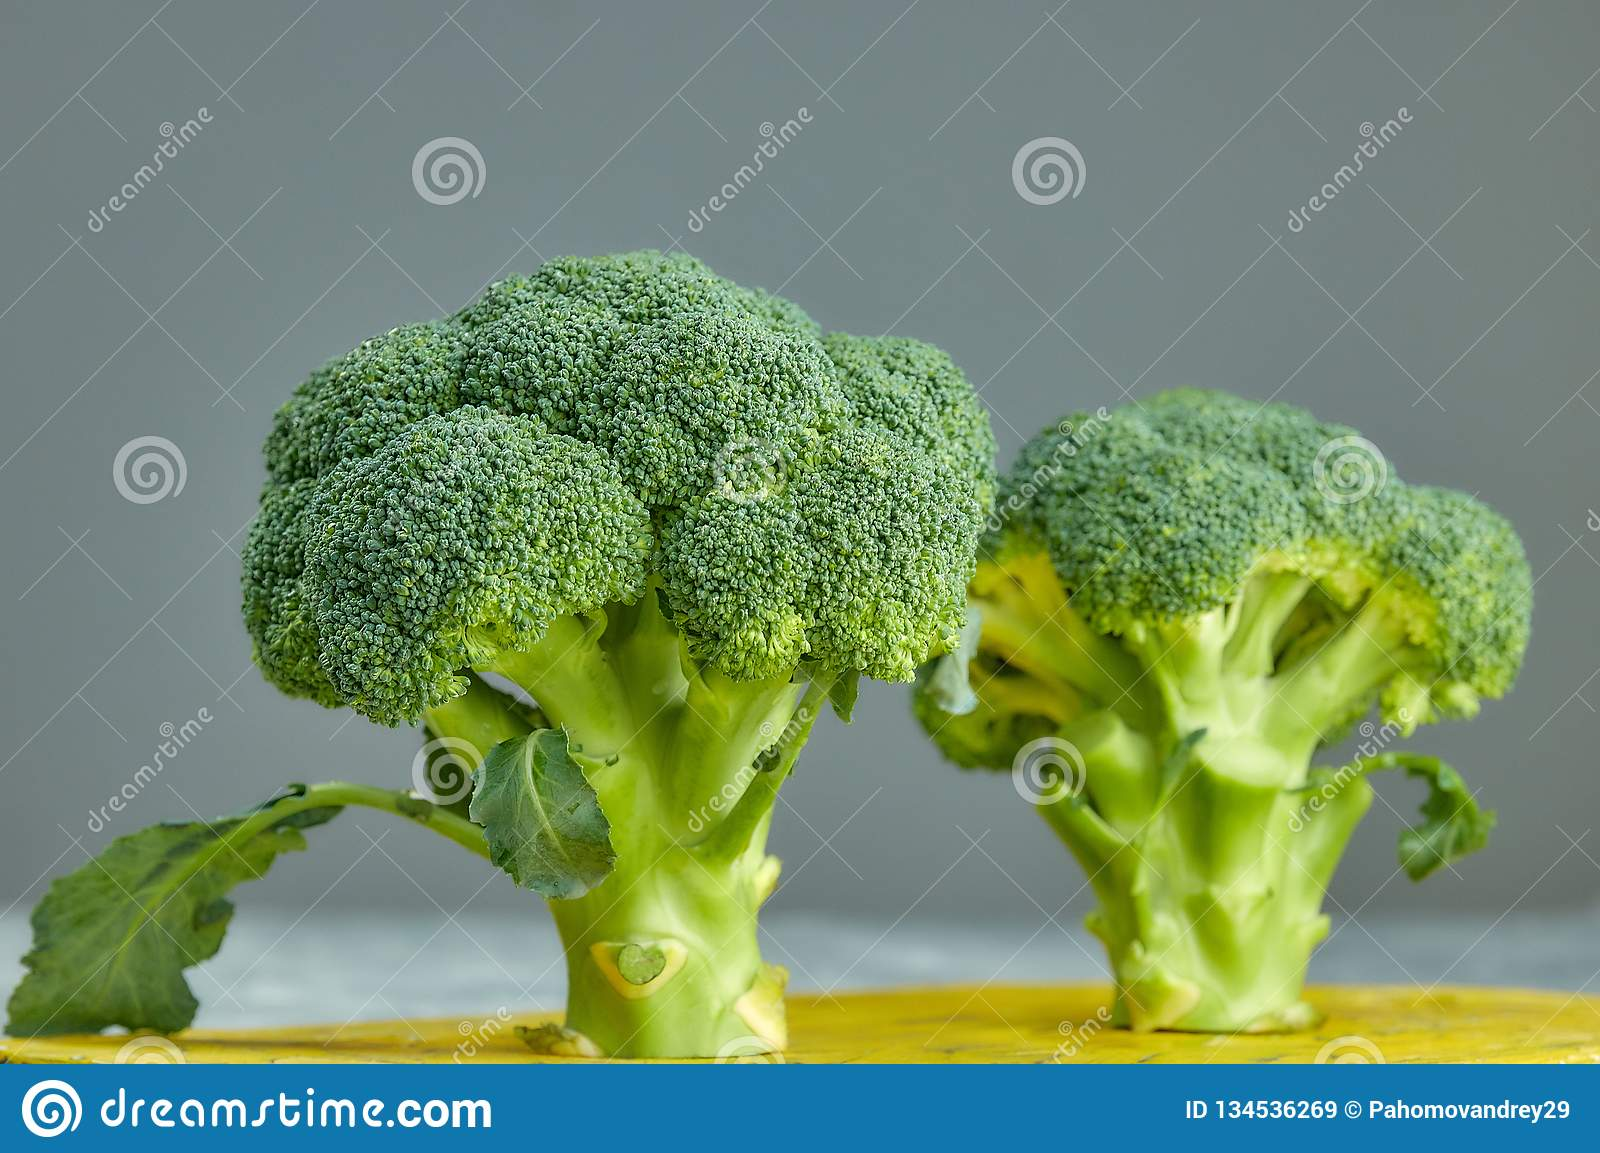 Two heads of healthy salad. fresh green broccoli. horizontal view of green vegetable flower. healthy diet.. green cabbage close-up. Two heads of healthy salad royalty free stock images